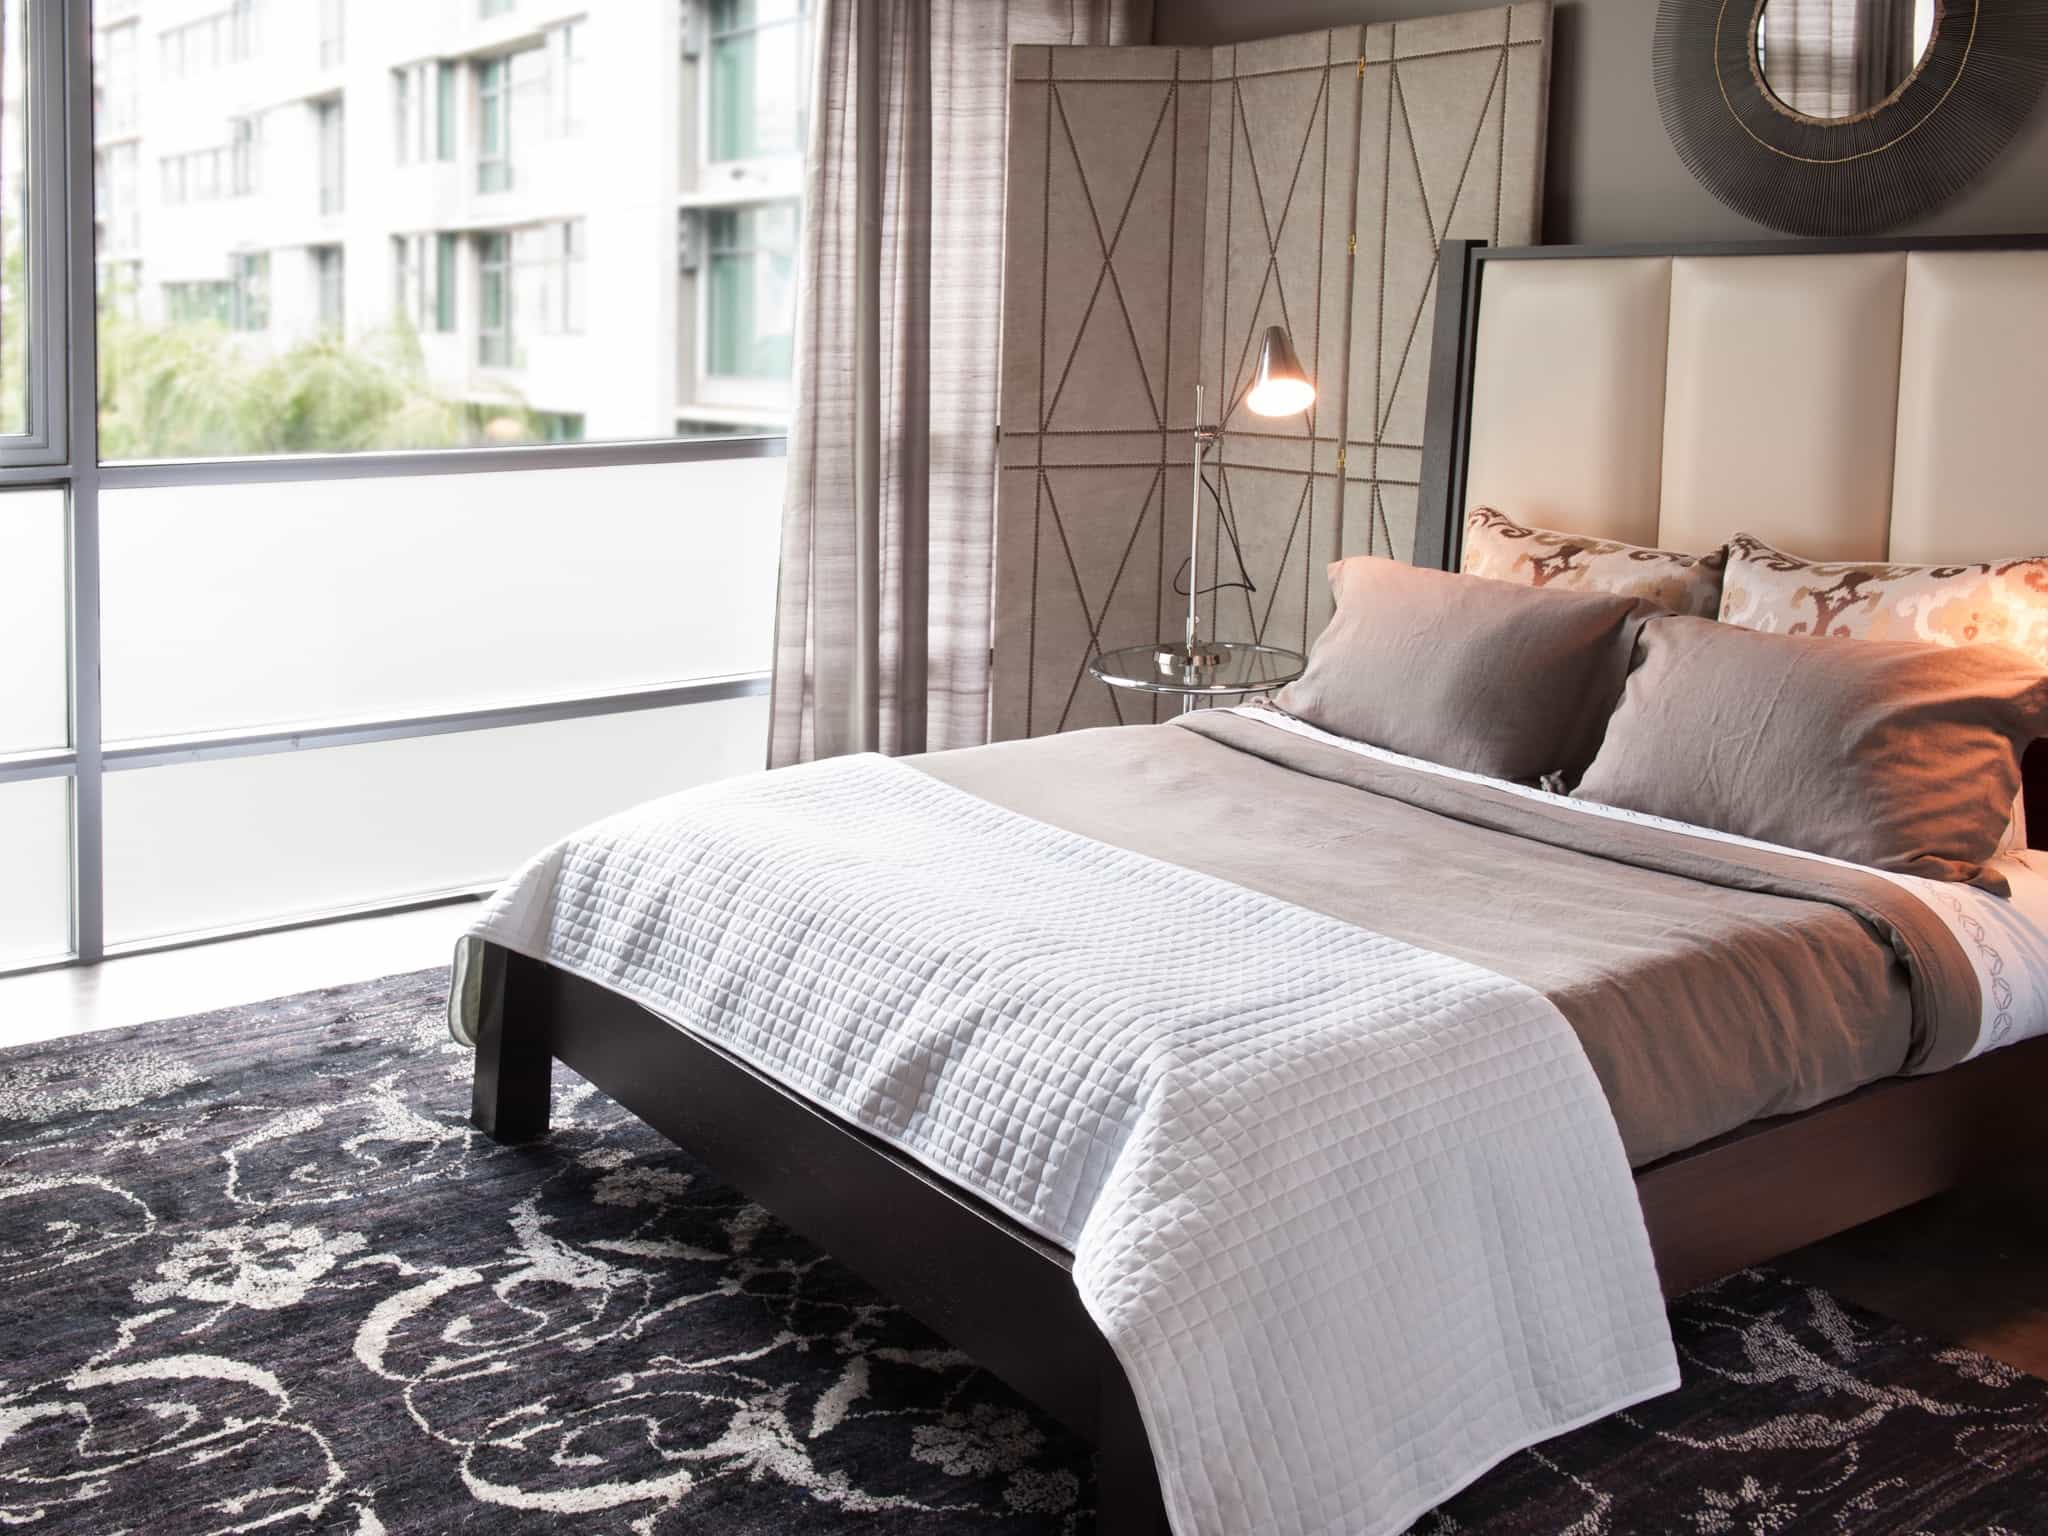 Modern Apartment Bedroom Rugs Decor (View 15 of 28)